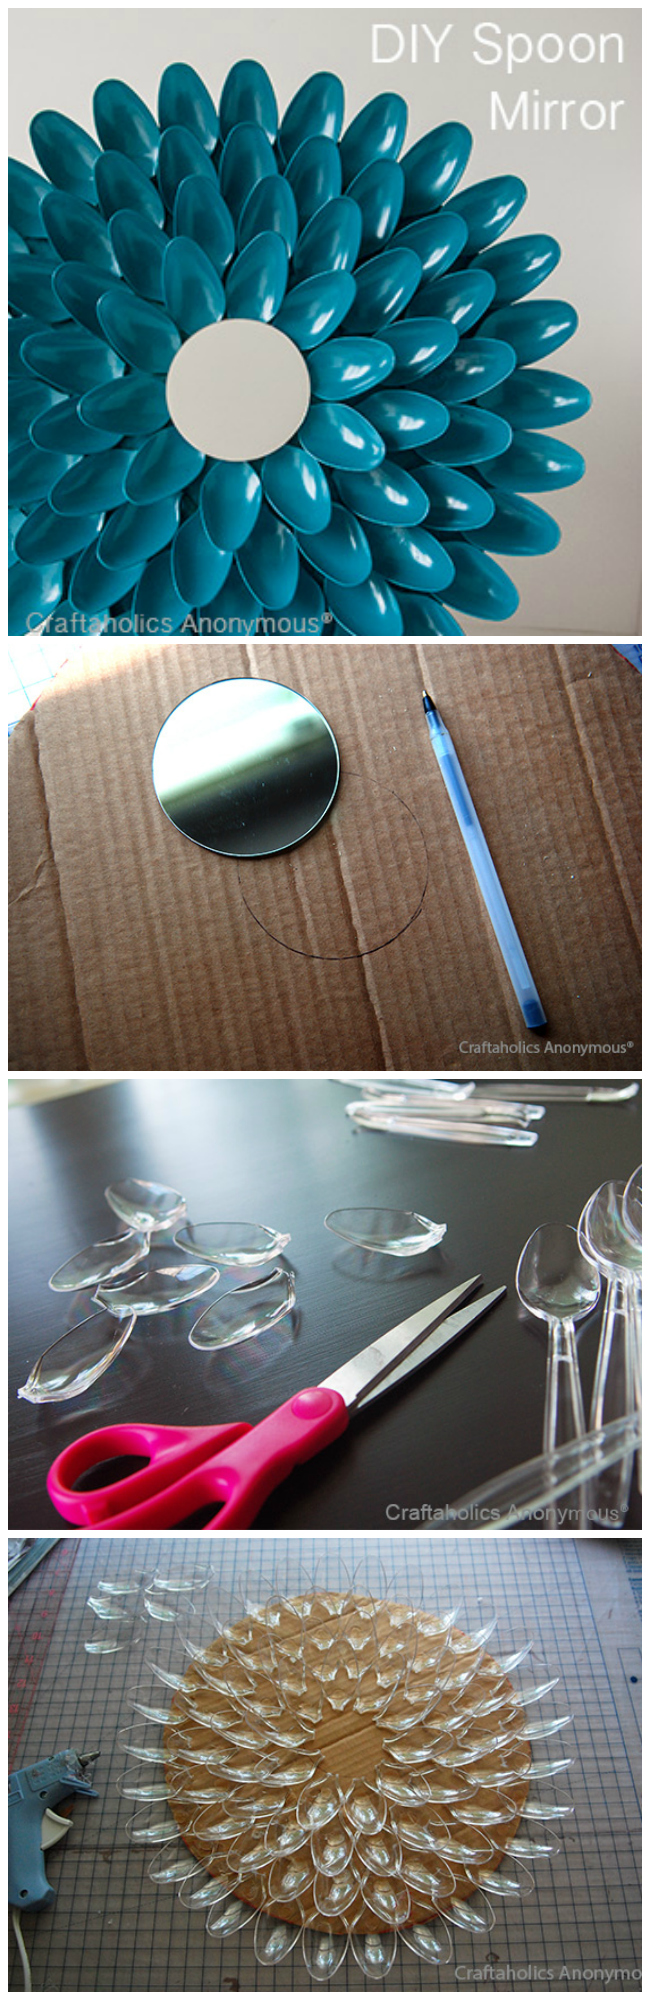 spoon mirror tutorial. Costs only $3 dollars to make, turns out stunning!